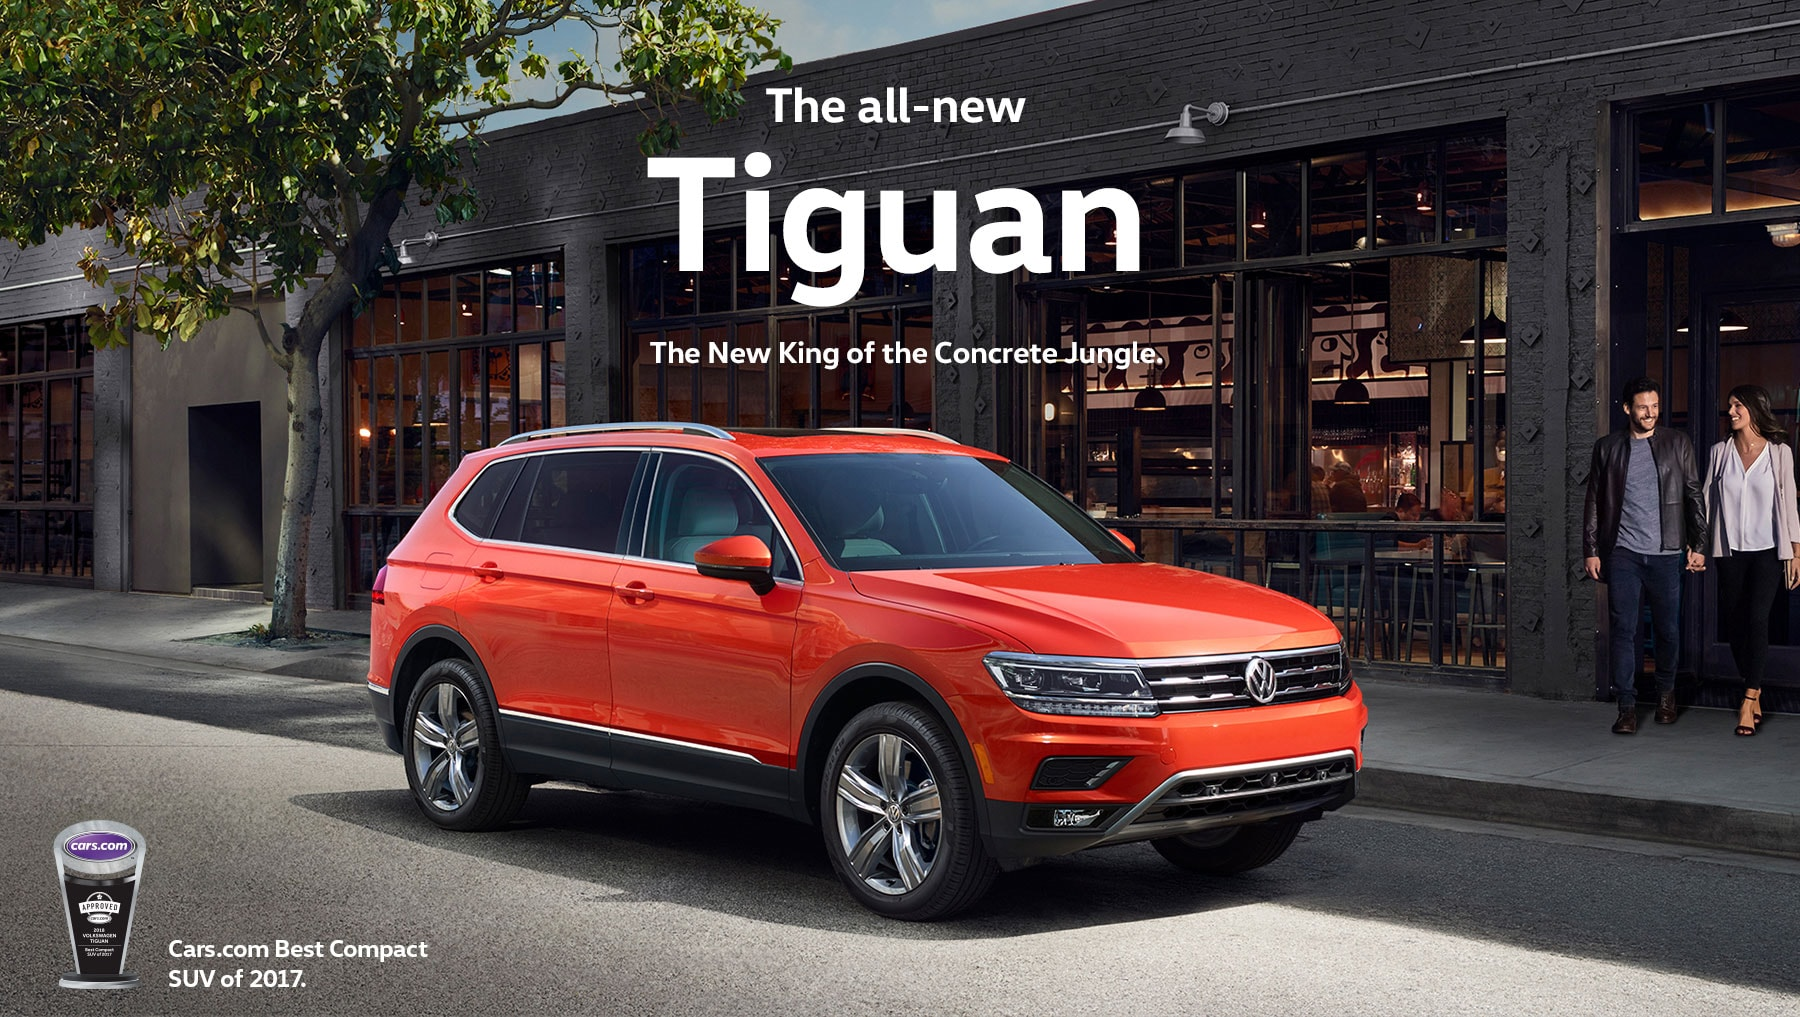 2018 Volkswagen Tiguan - King of the SUVs in 2017